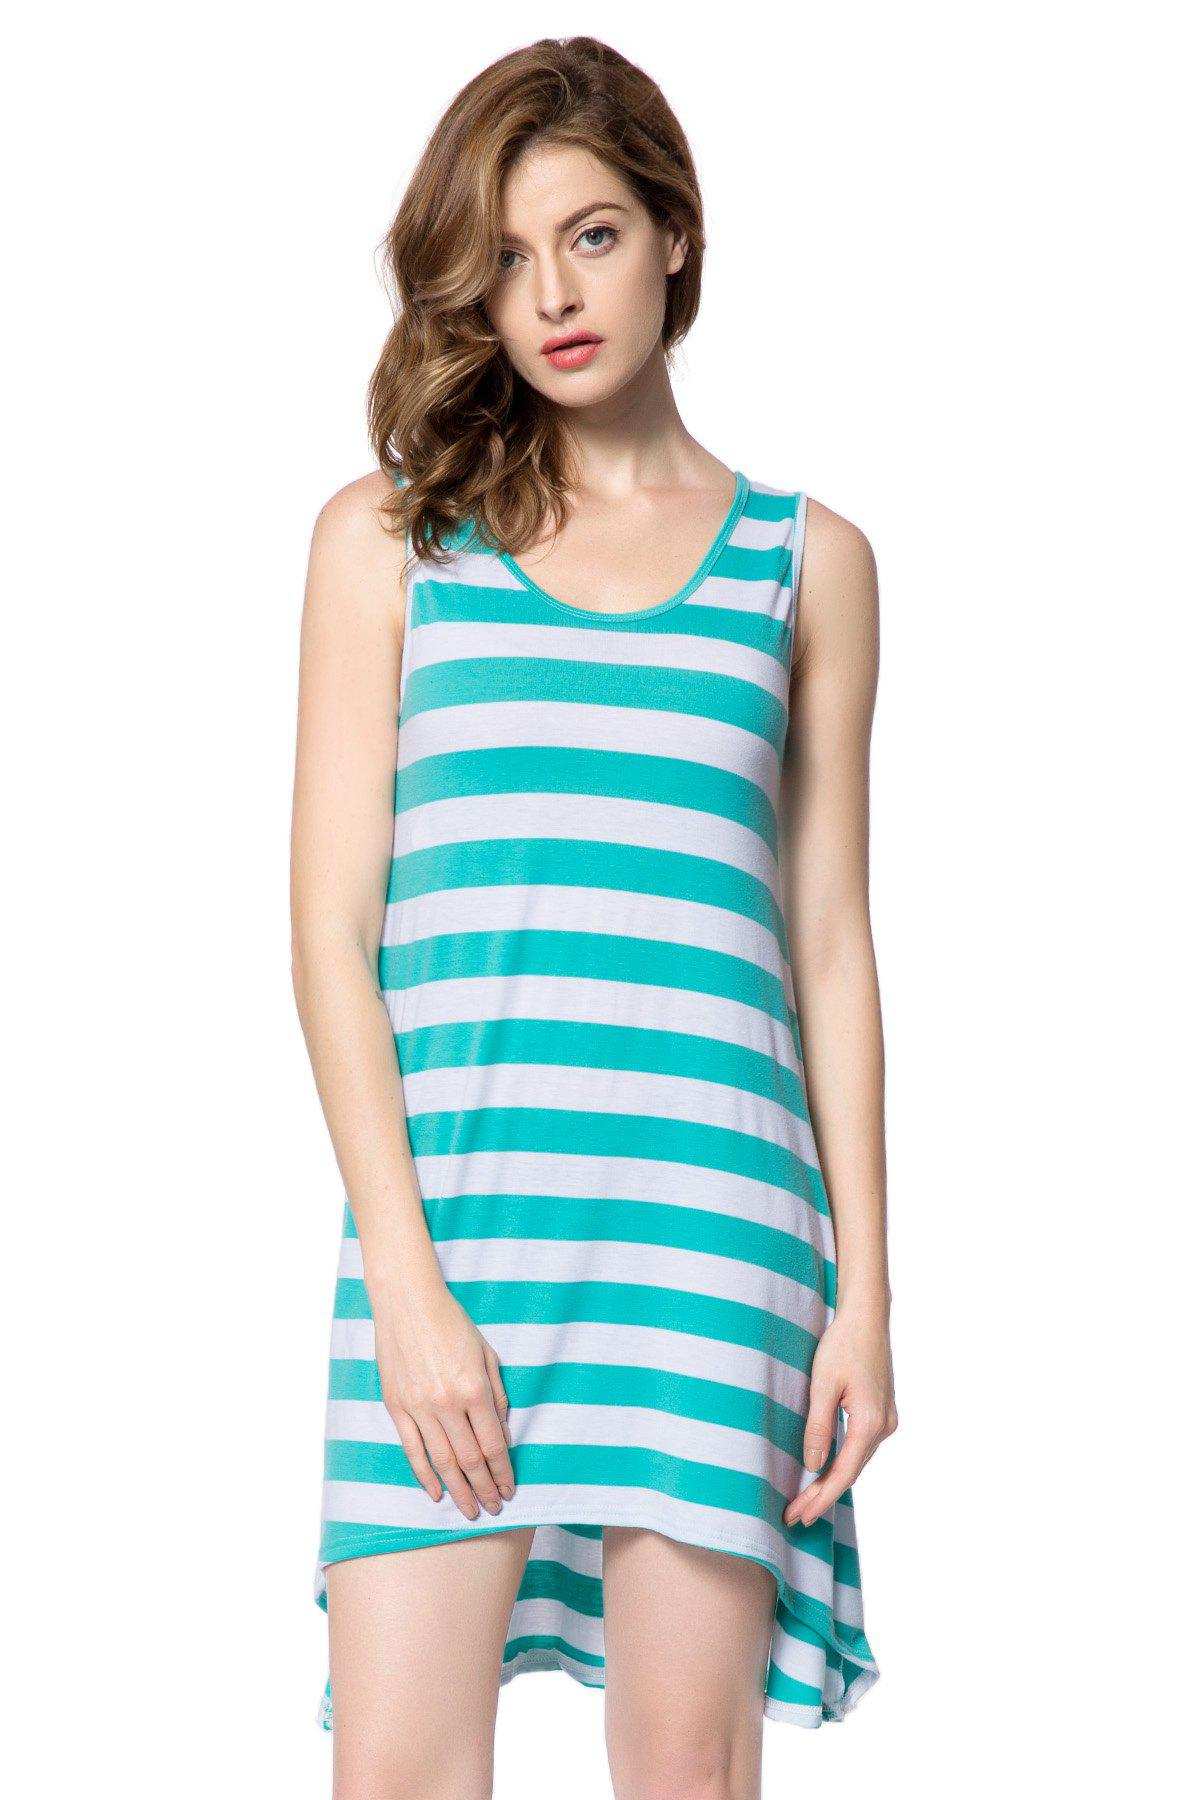 Casual Scoop Neck manches ample robe à rayures Femmes - Vert ONE SIZE